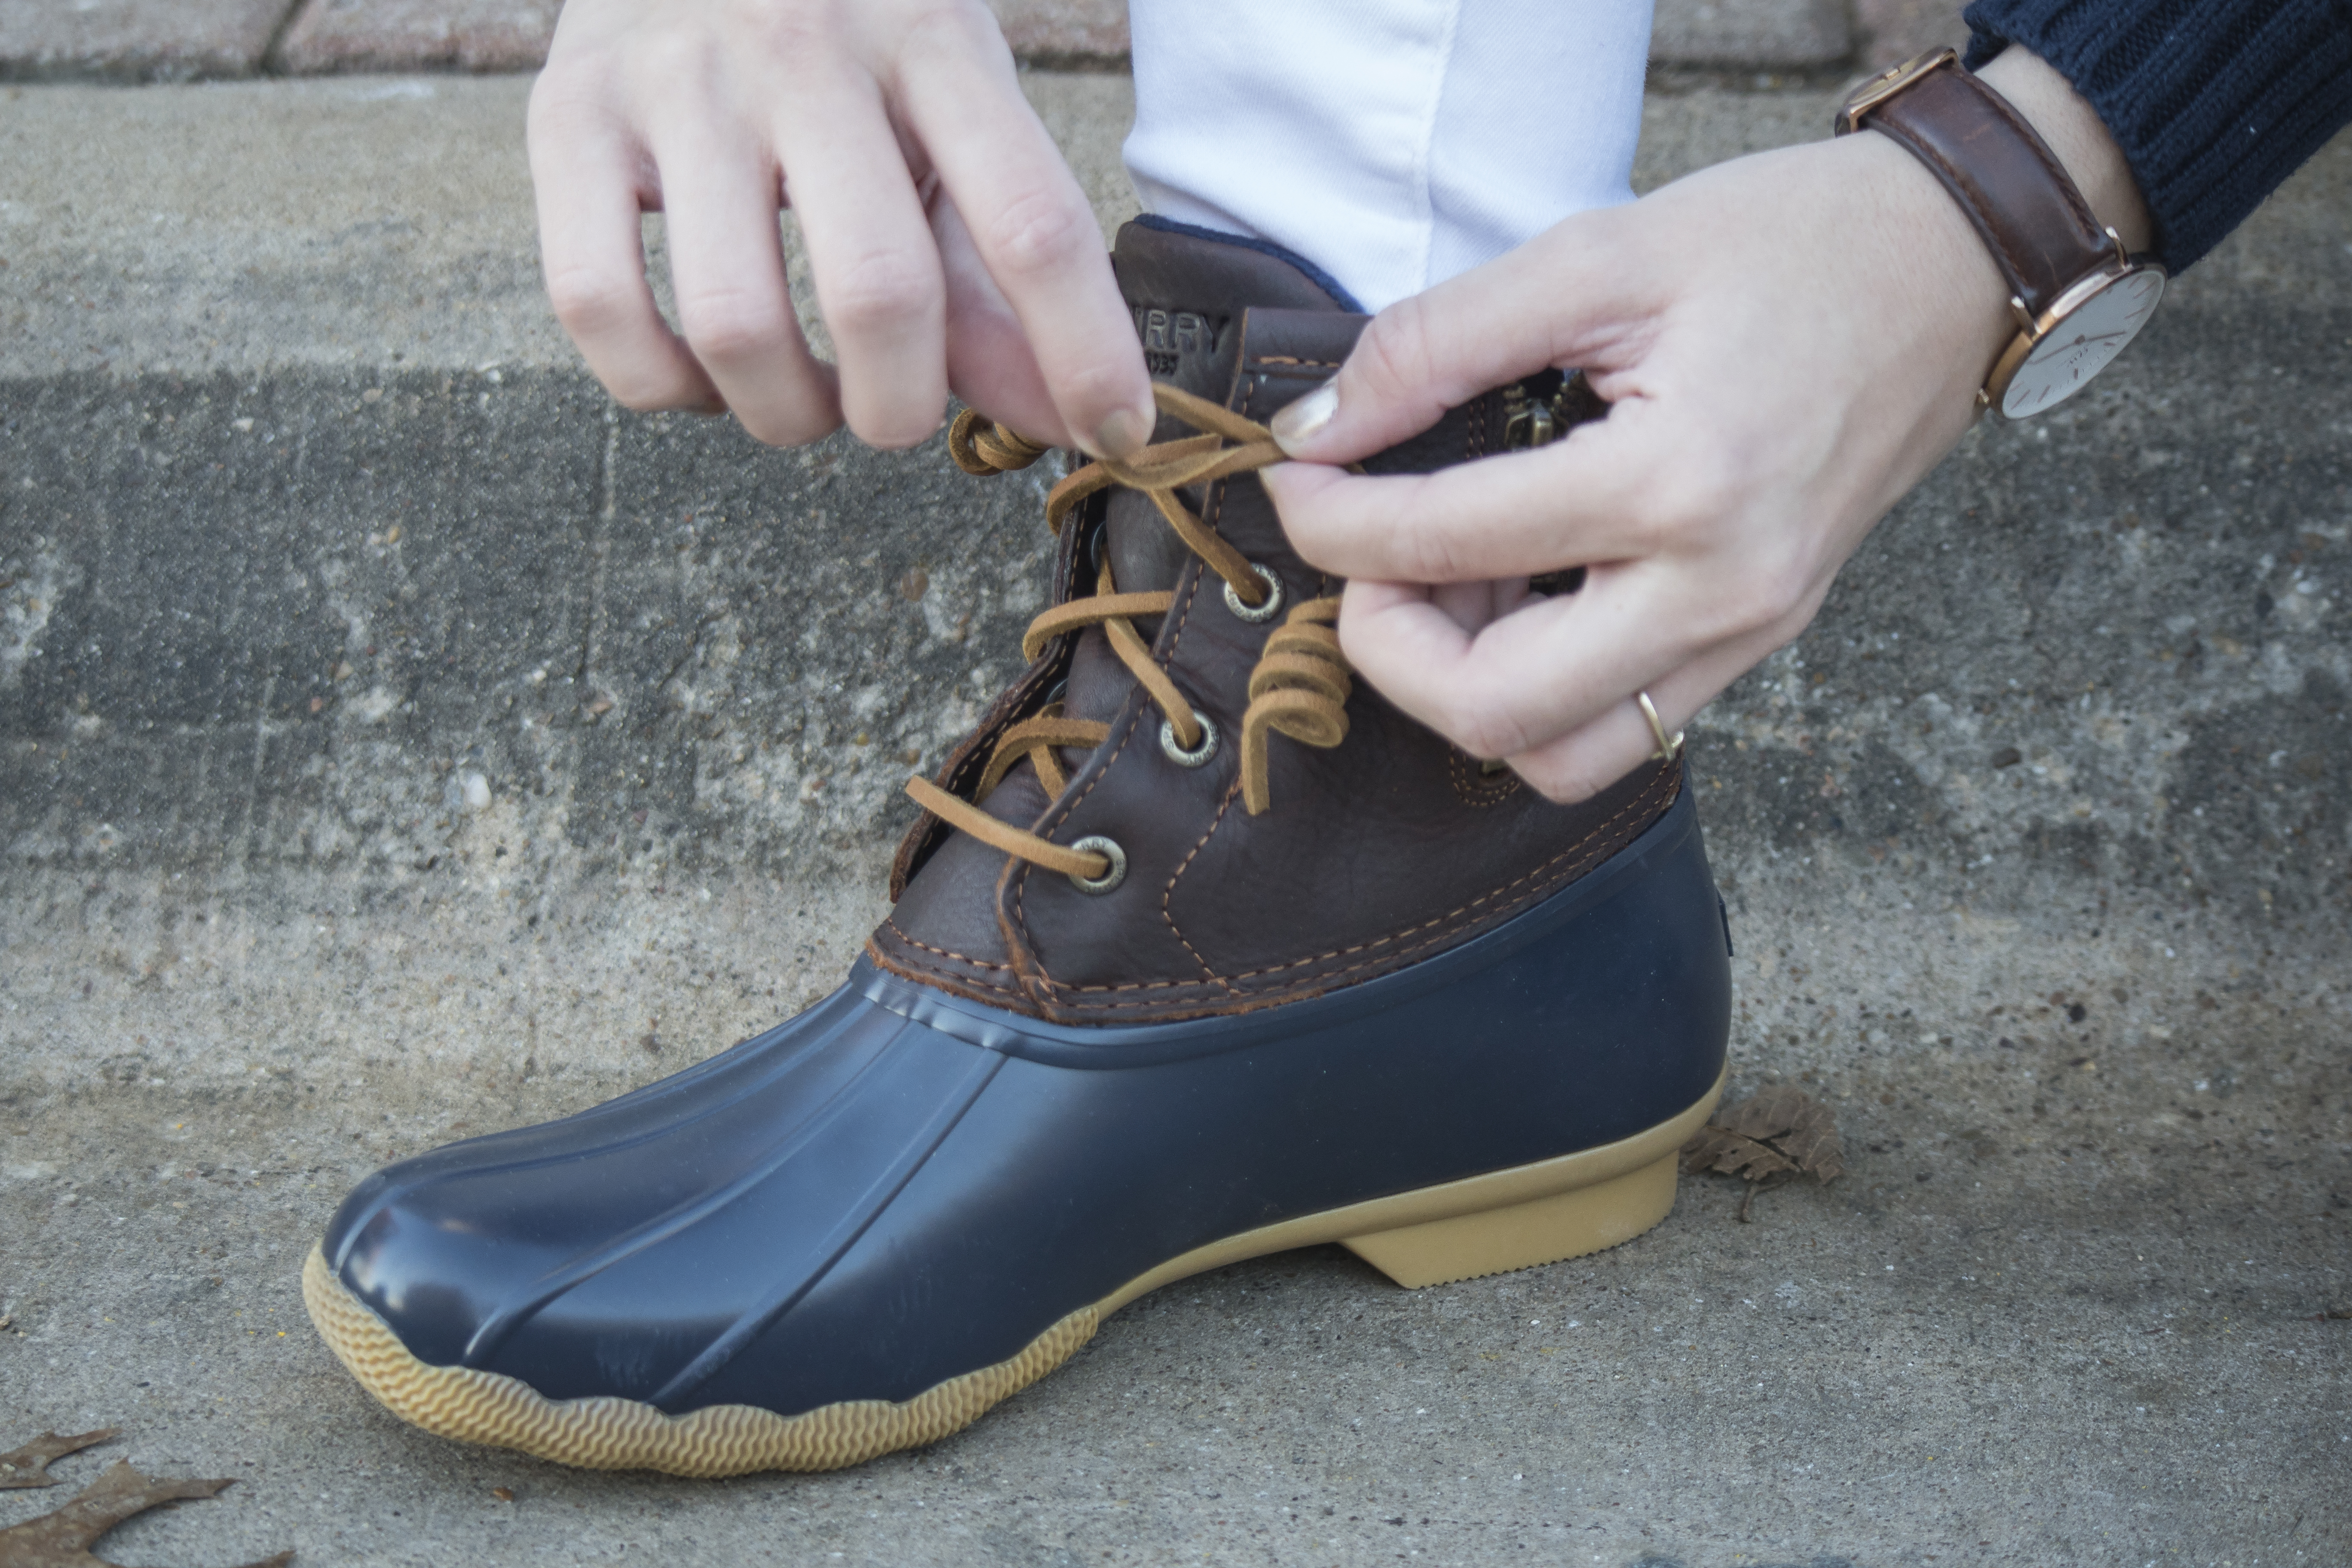 How To Tie Duck Boots Step by Step